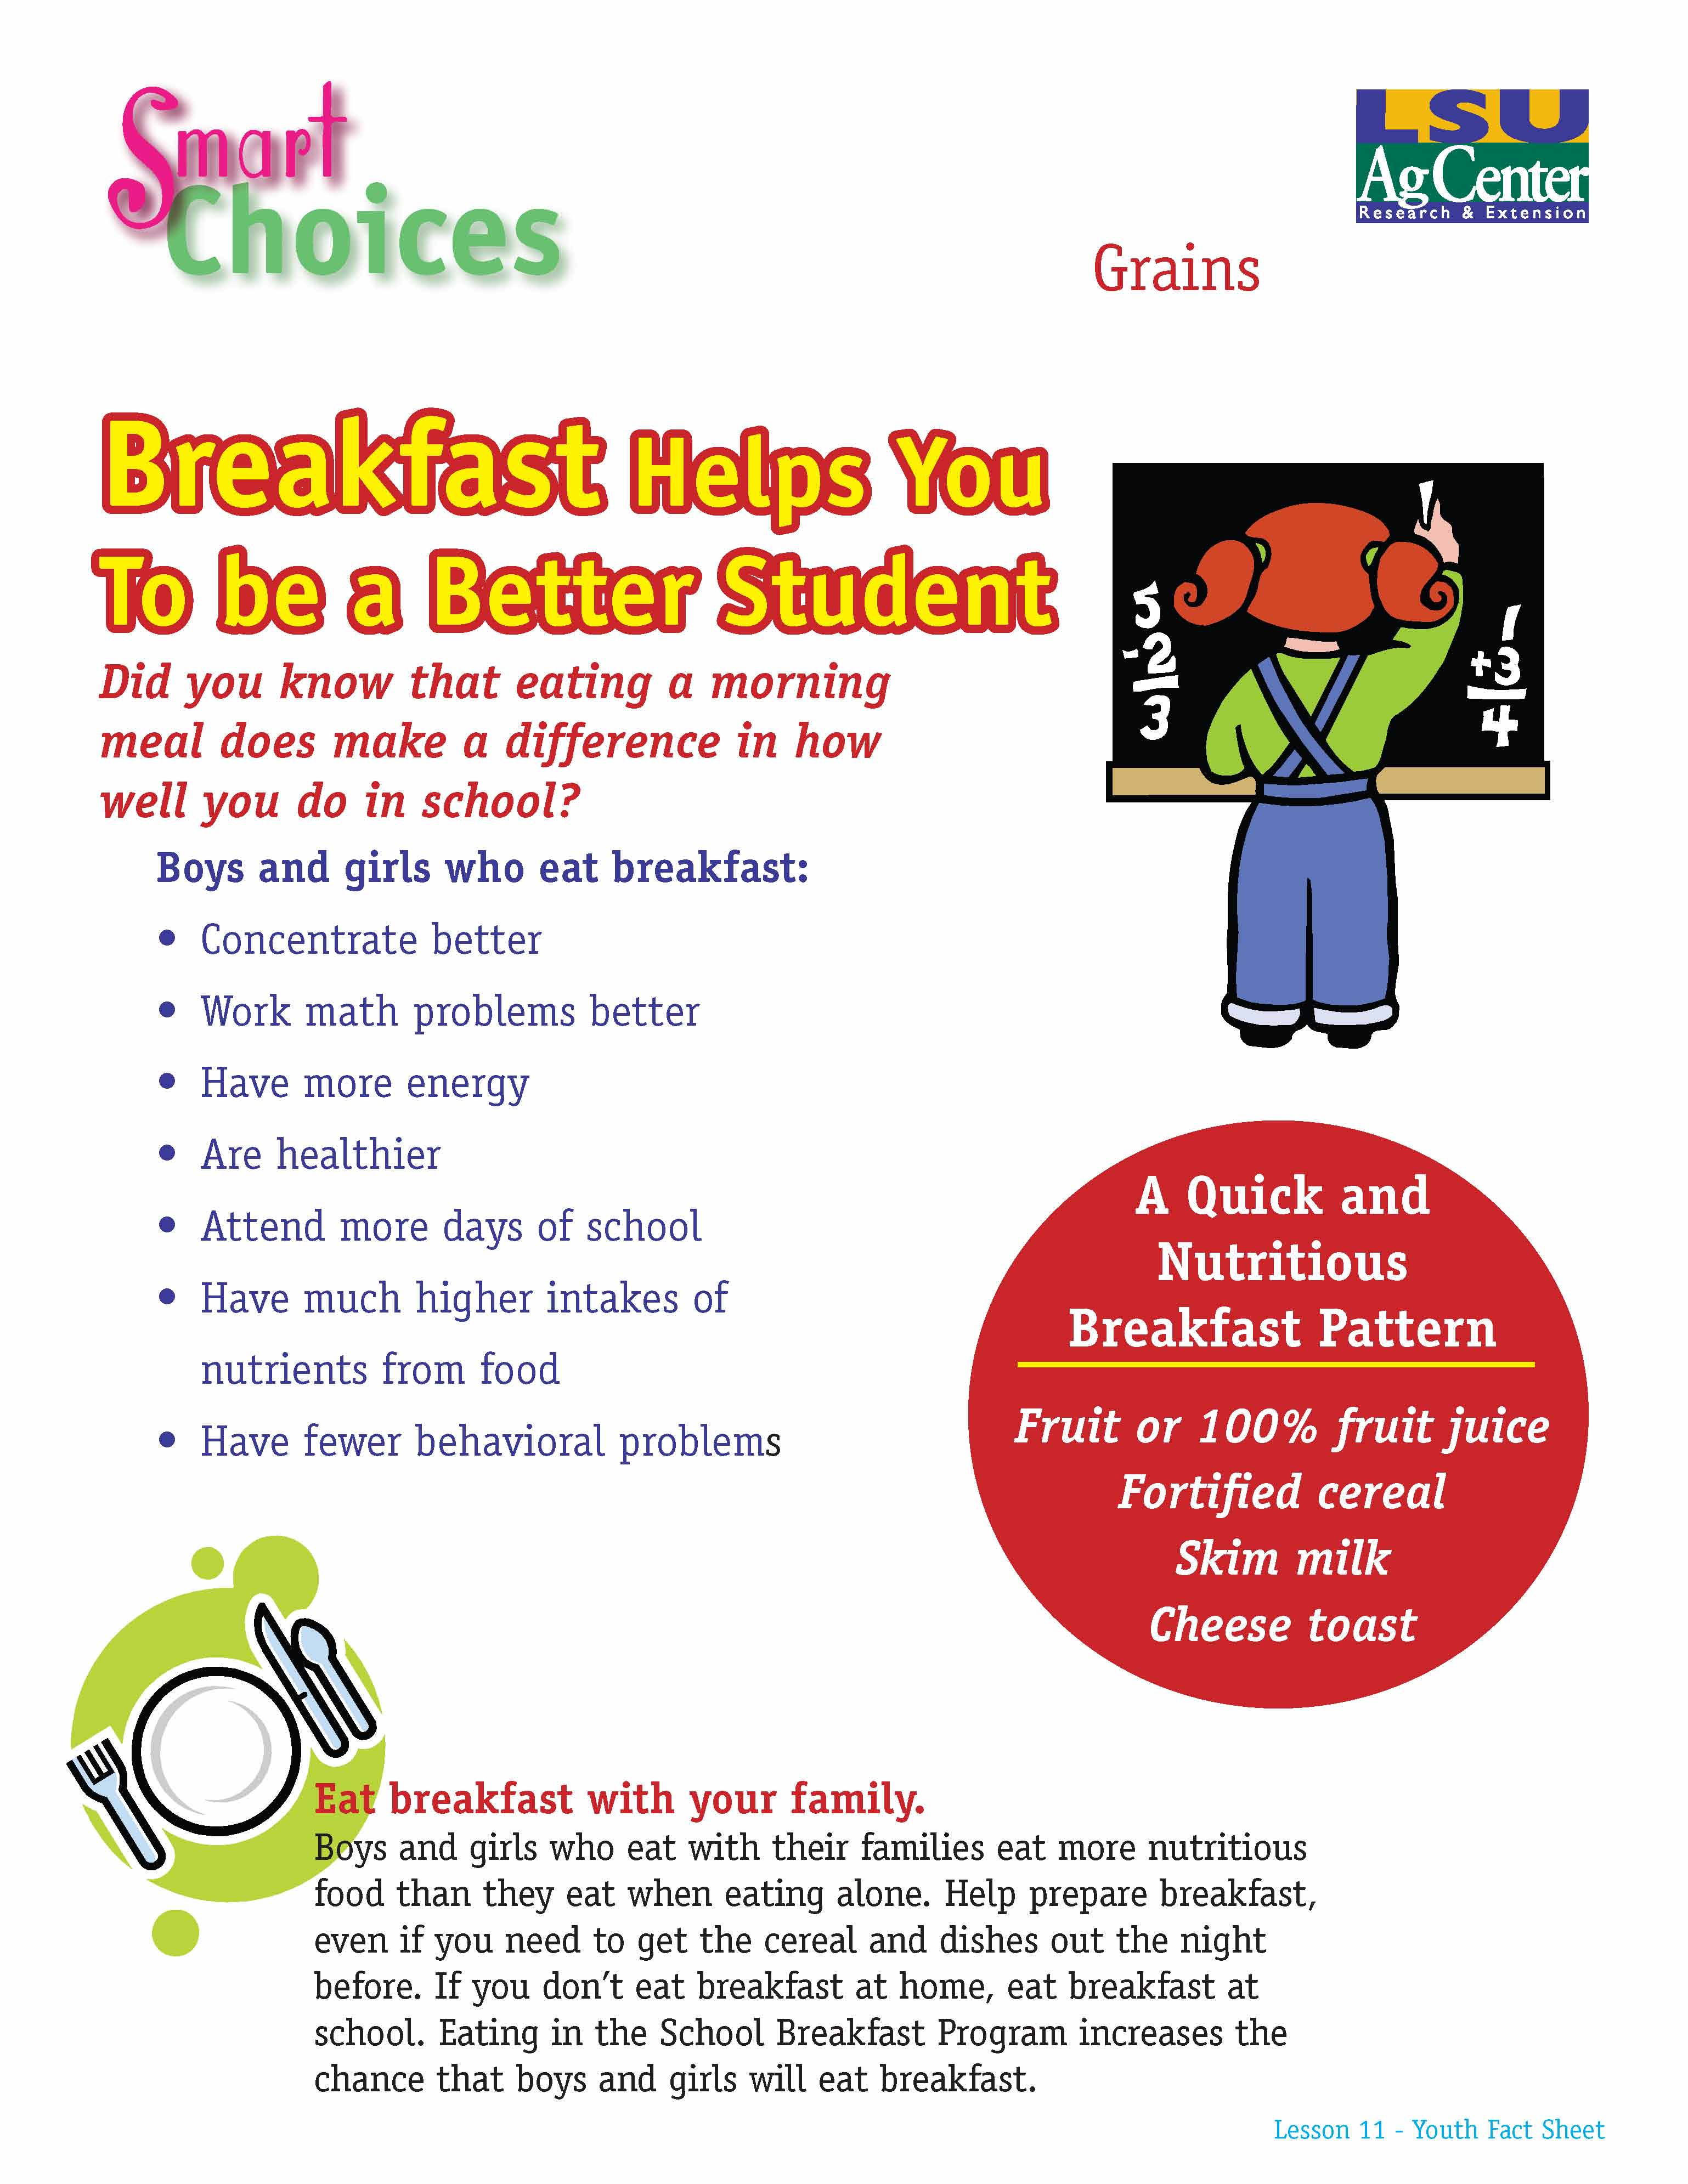 Smart Choices:  Breakfast Helps You Be a Better Student